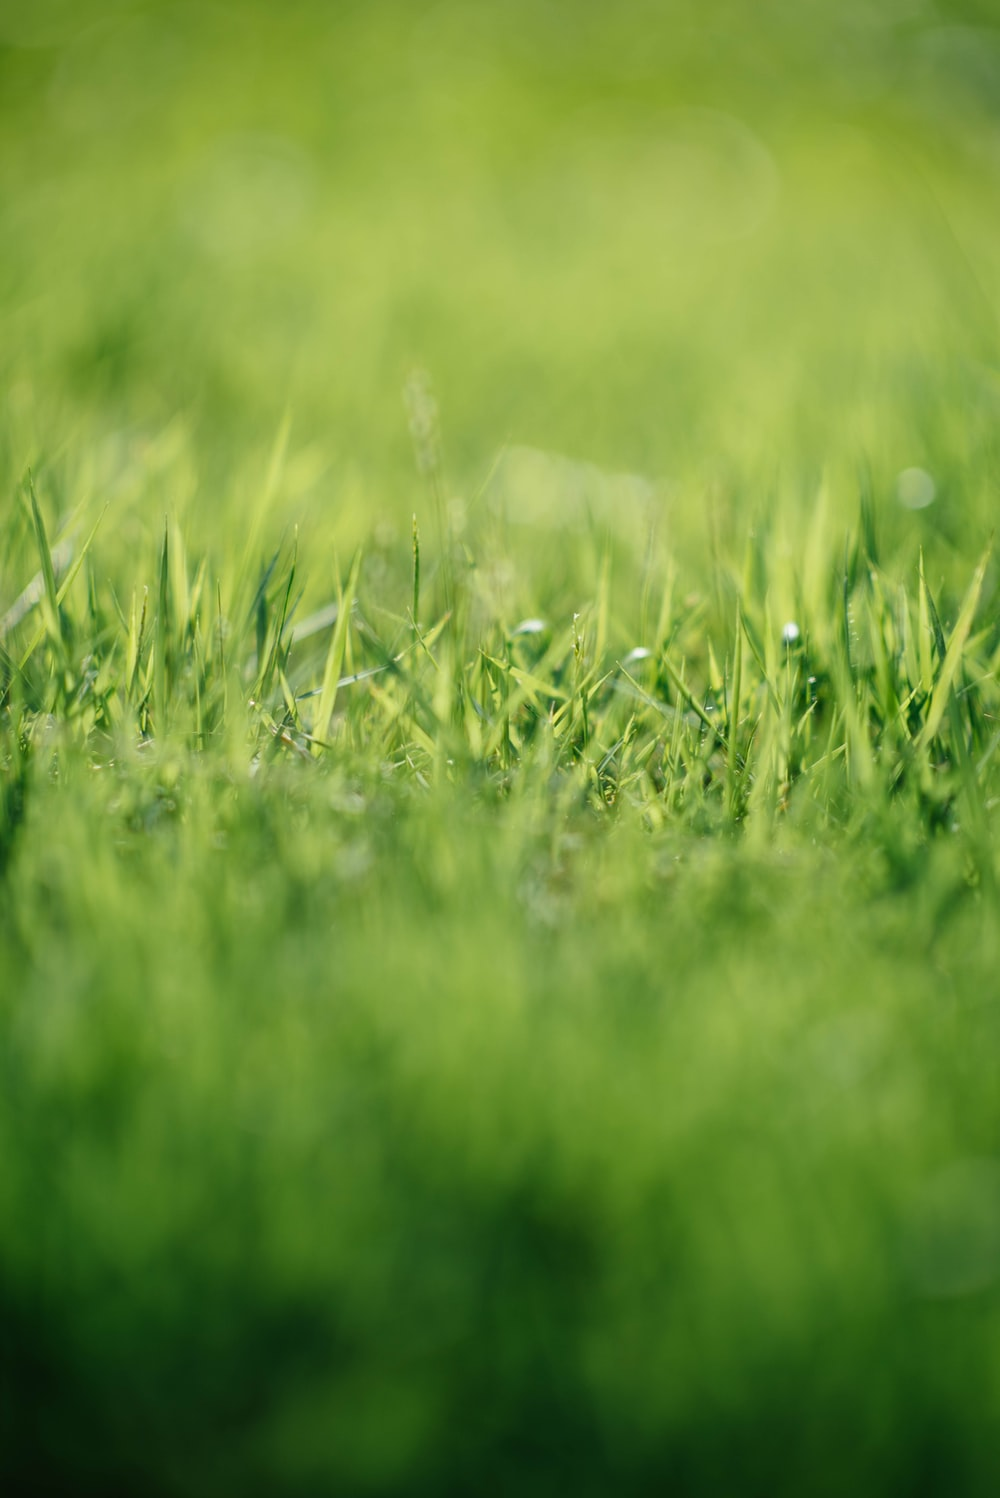 900+ Grass Background Images: Download HD Backgrounds on ...